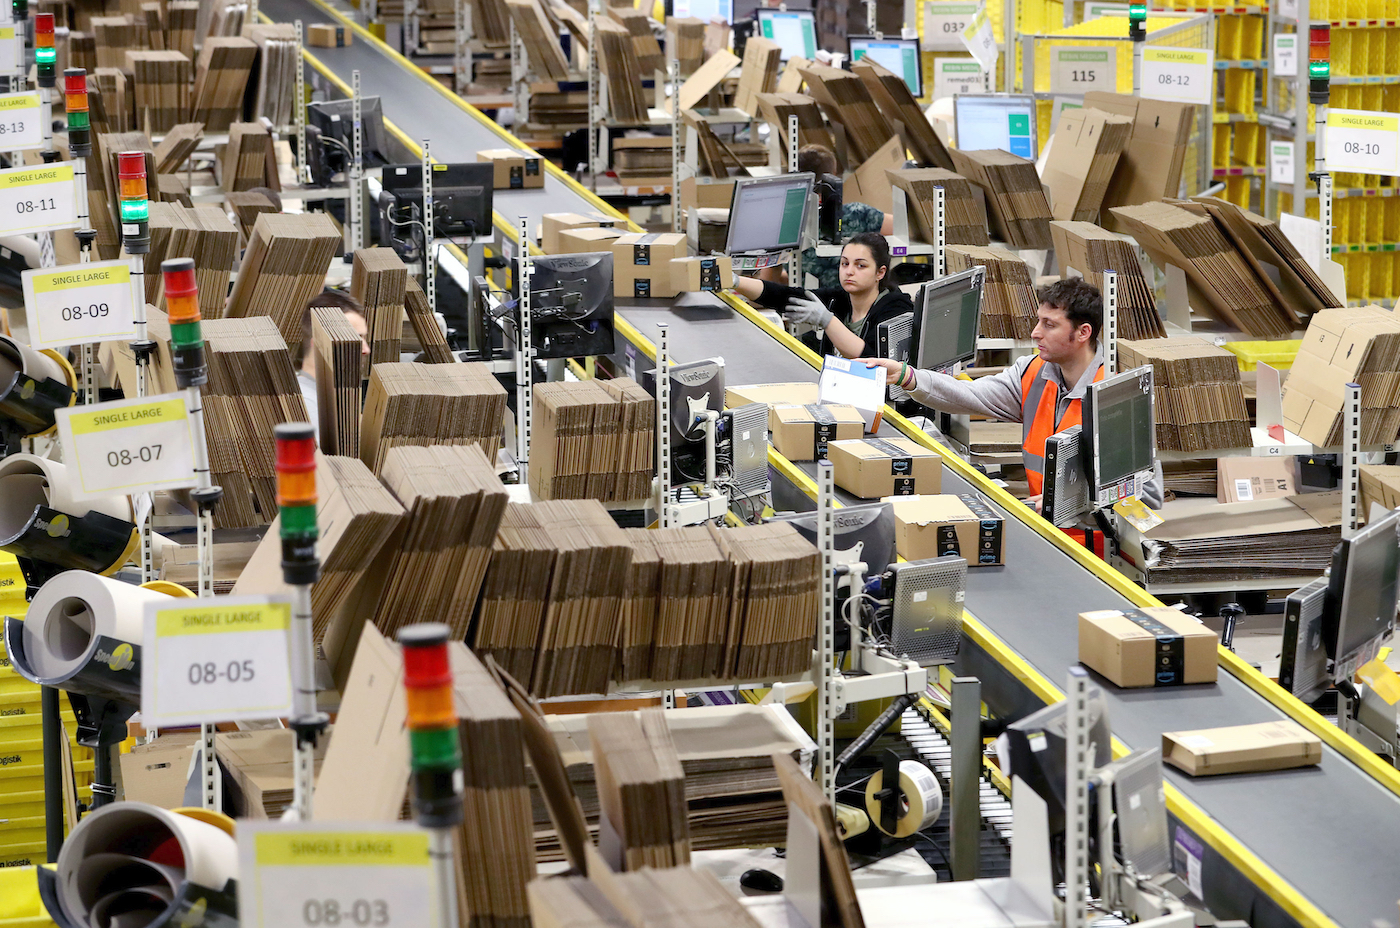 As e-commerce orders soar, 56 percent of retailers say fulfilling growing online demand is their top business challenge, an RSR survey says.